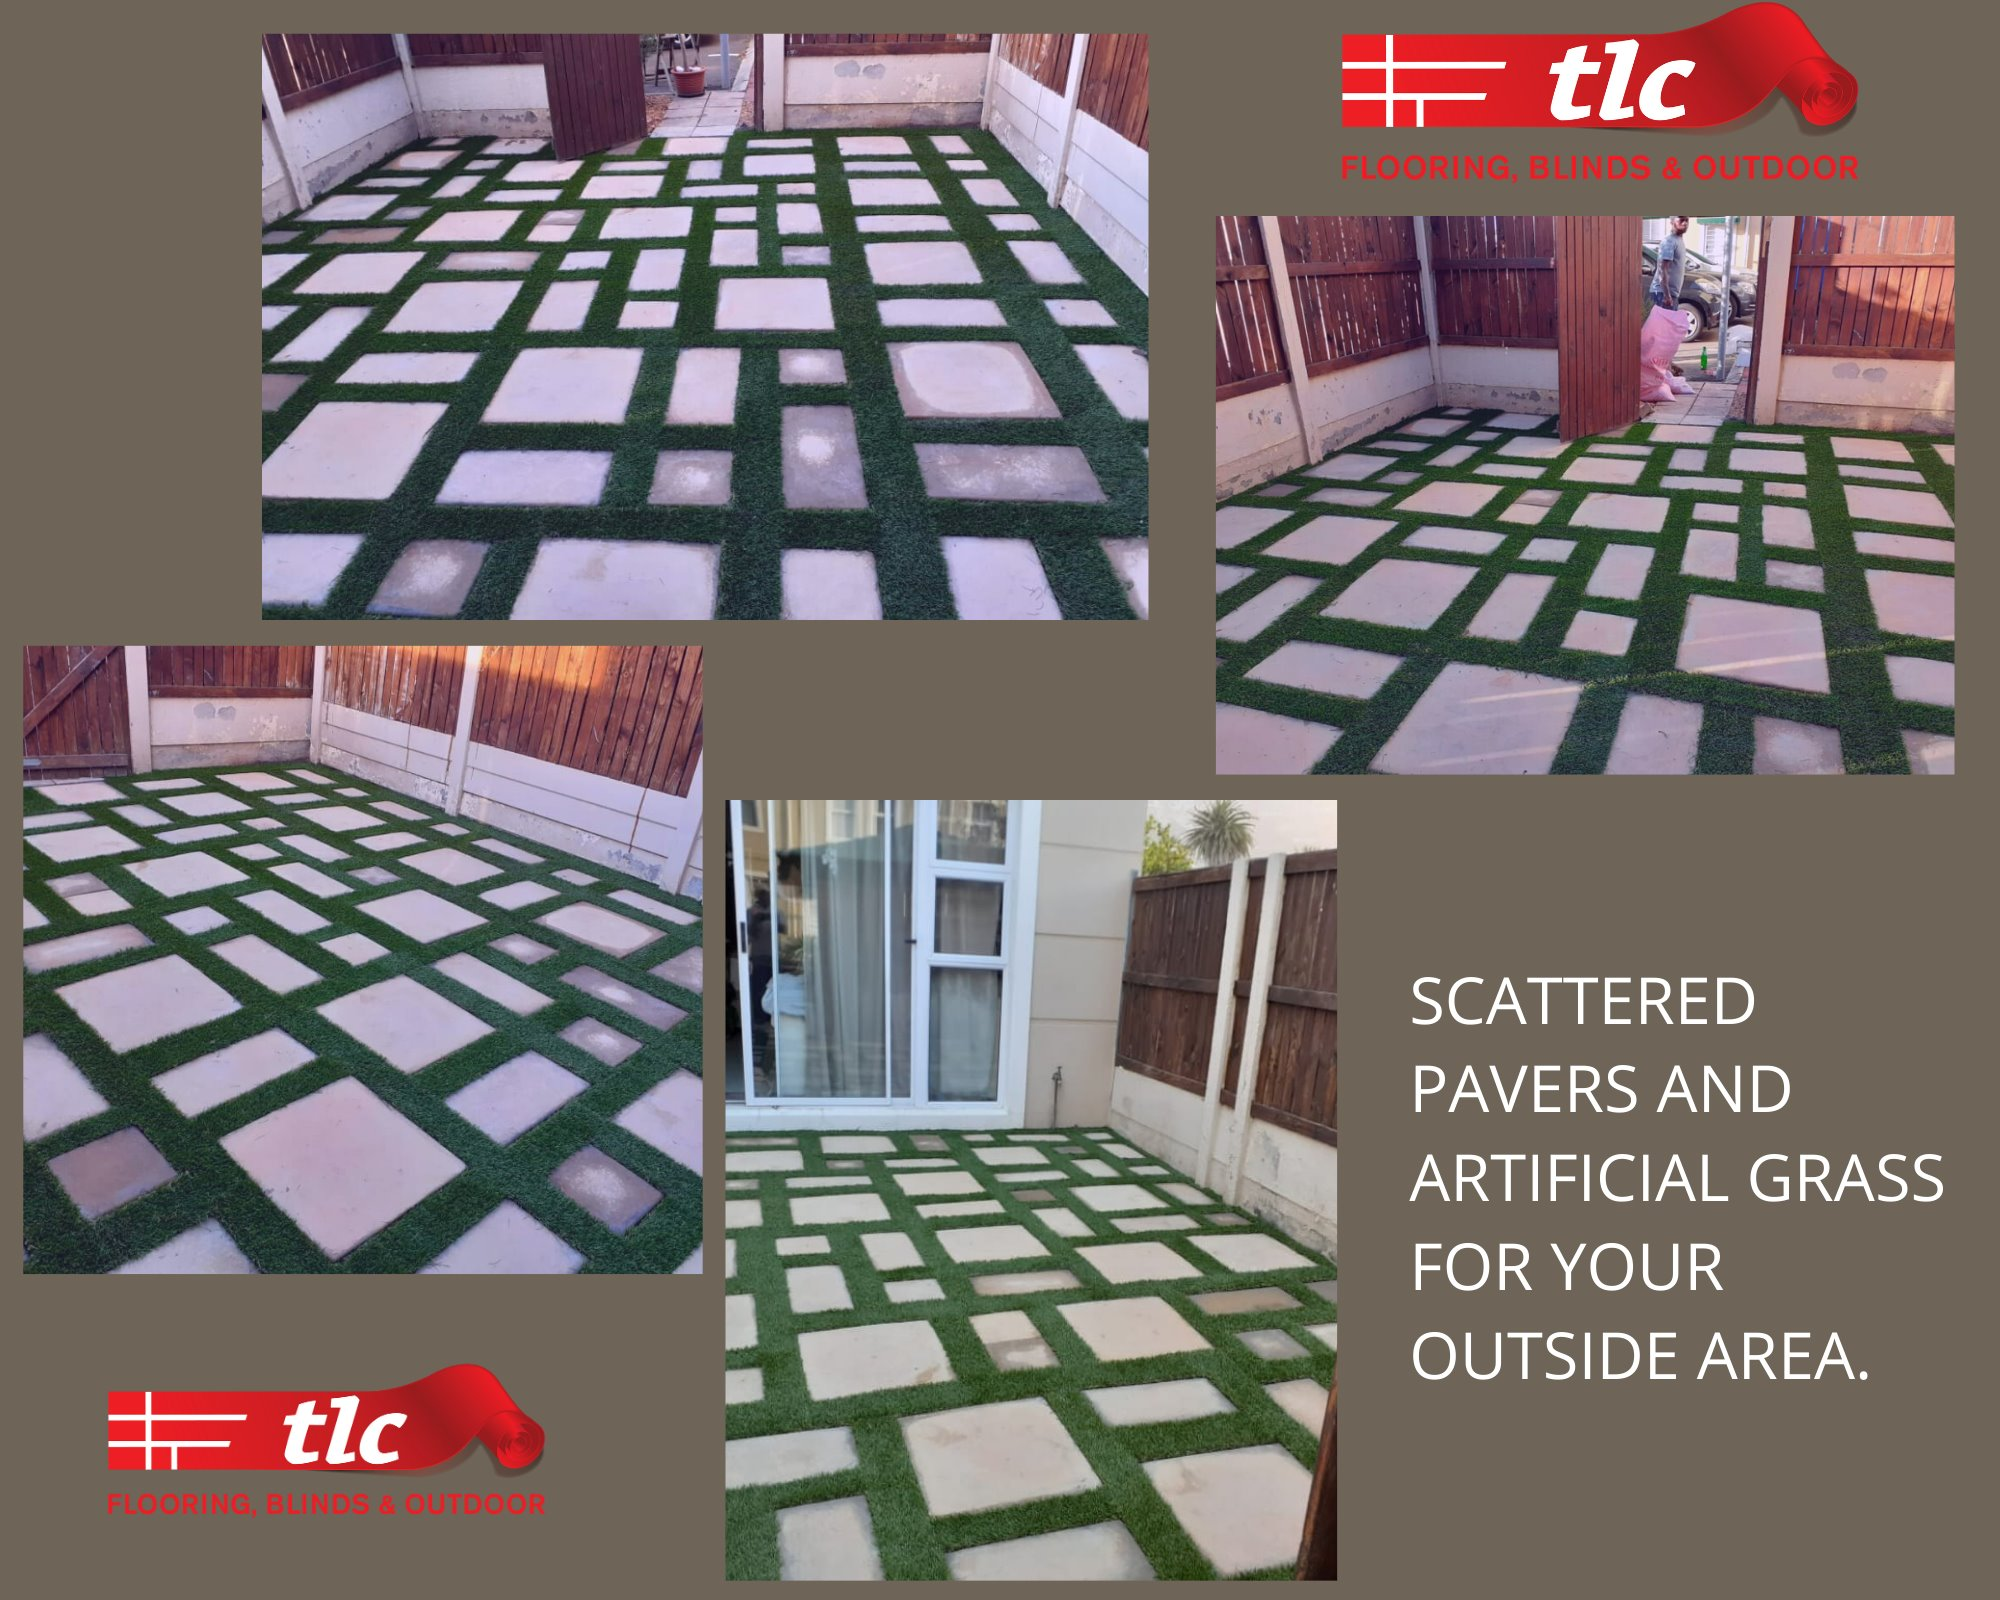 Scattered Pavers and Artificial Grass